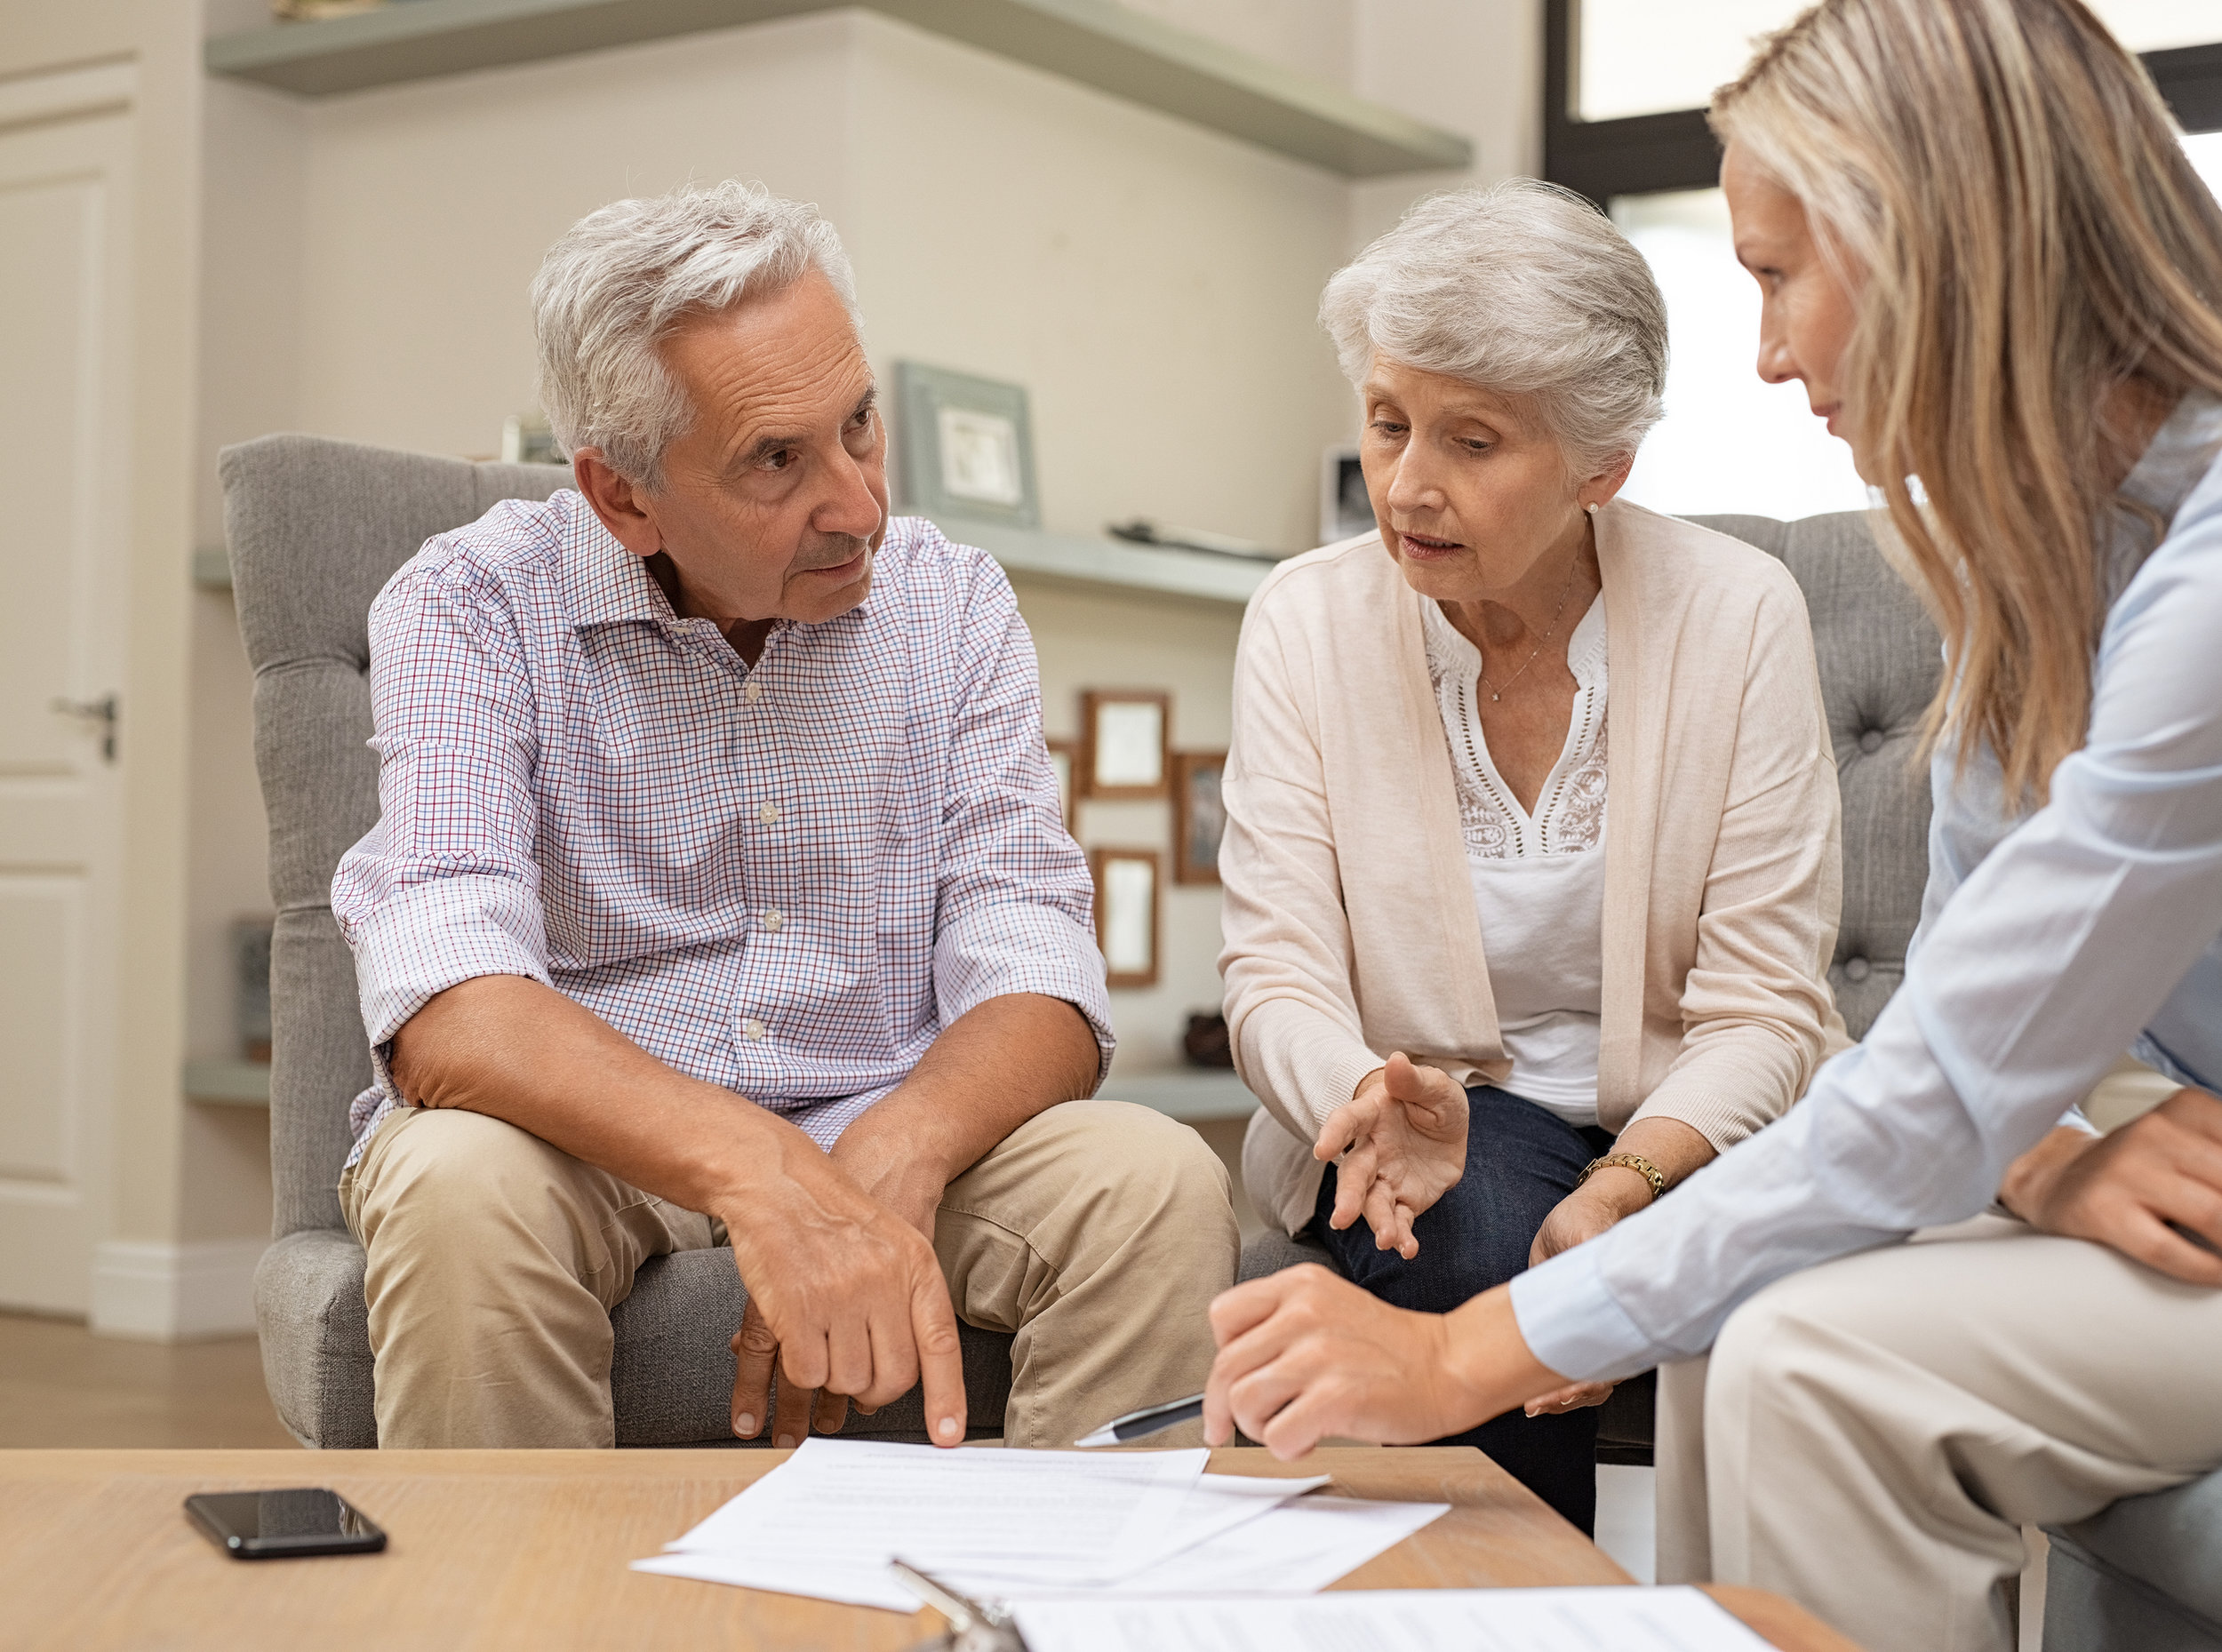 Developing an Overall Move Plan - TLC Senior Move Experts will assist you from planning to completion. We will develop a timeline for your transition making it as efficient and stress-free as possible while always being considerate of your needs.